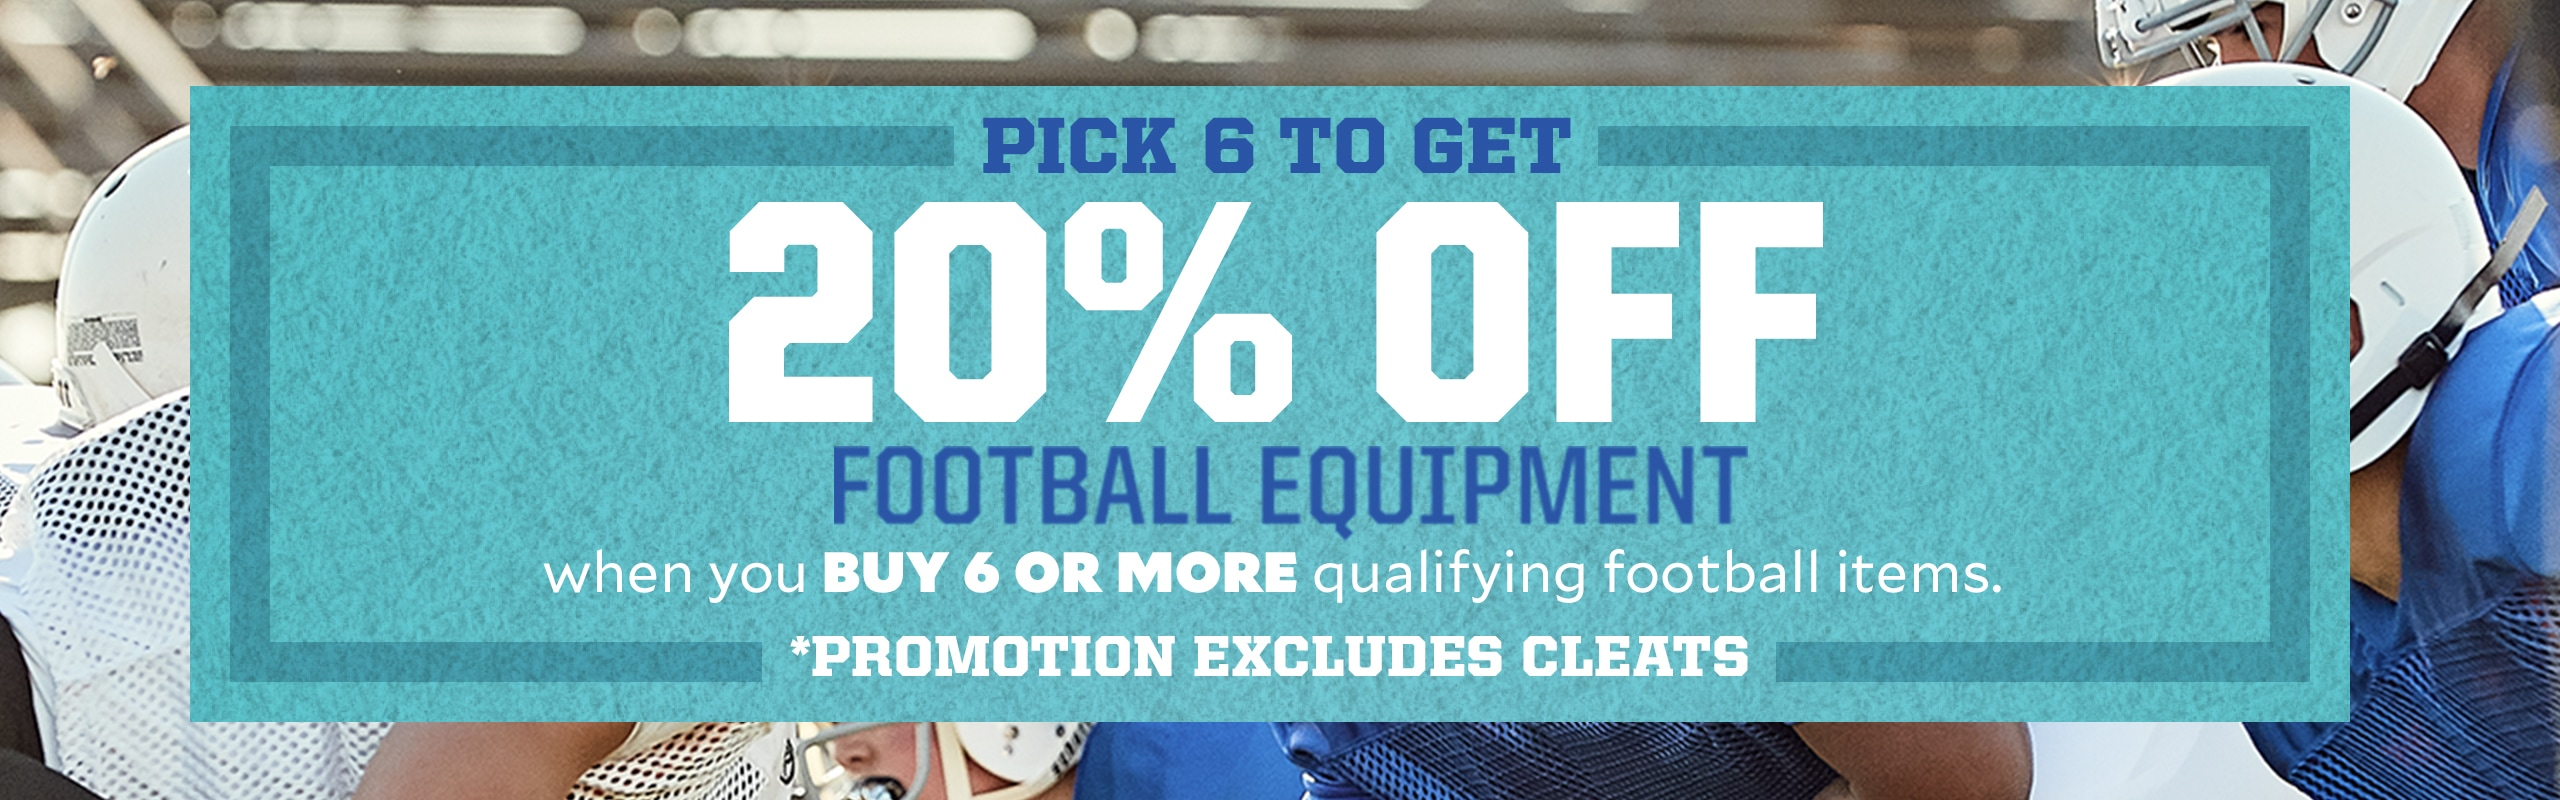 Pick Six To Get 20% Off Football Equipment When You Buy 6 Or More Qualifying Football Items. *Exclusions Apply Promotion Excludes Cleats